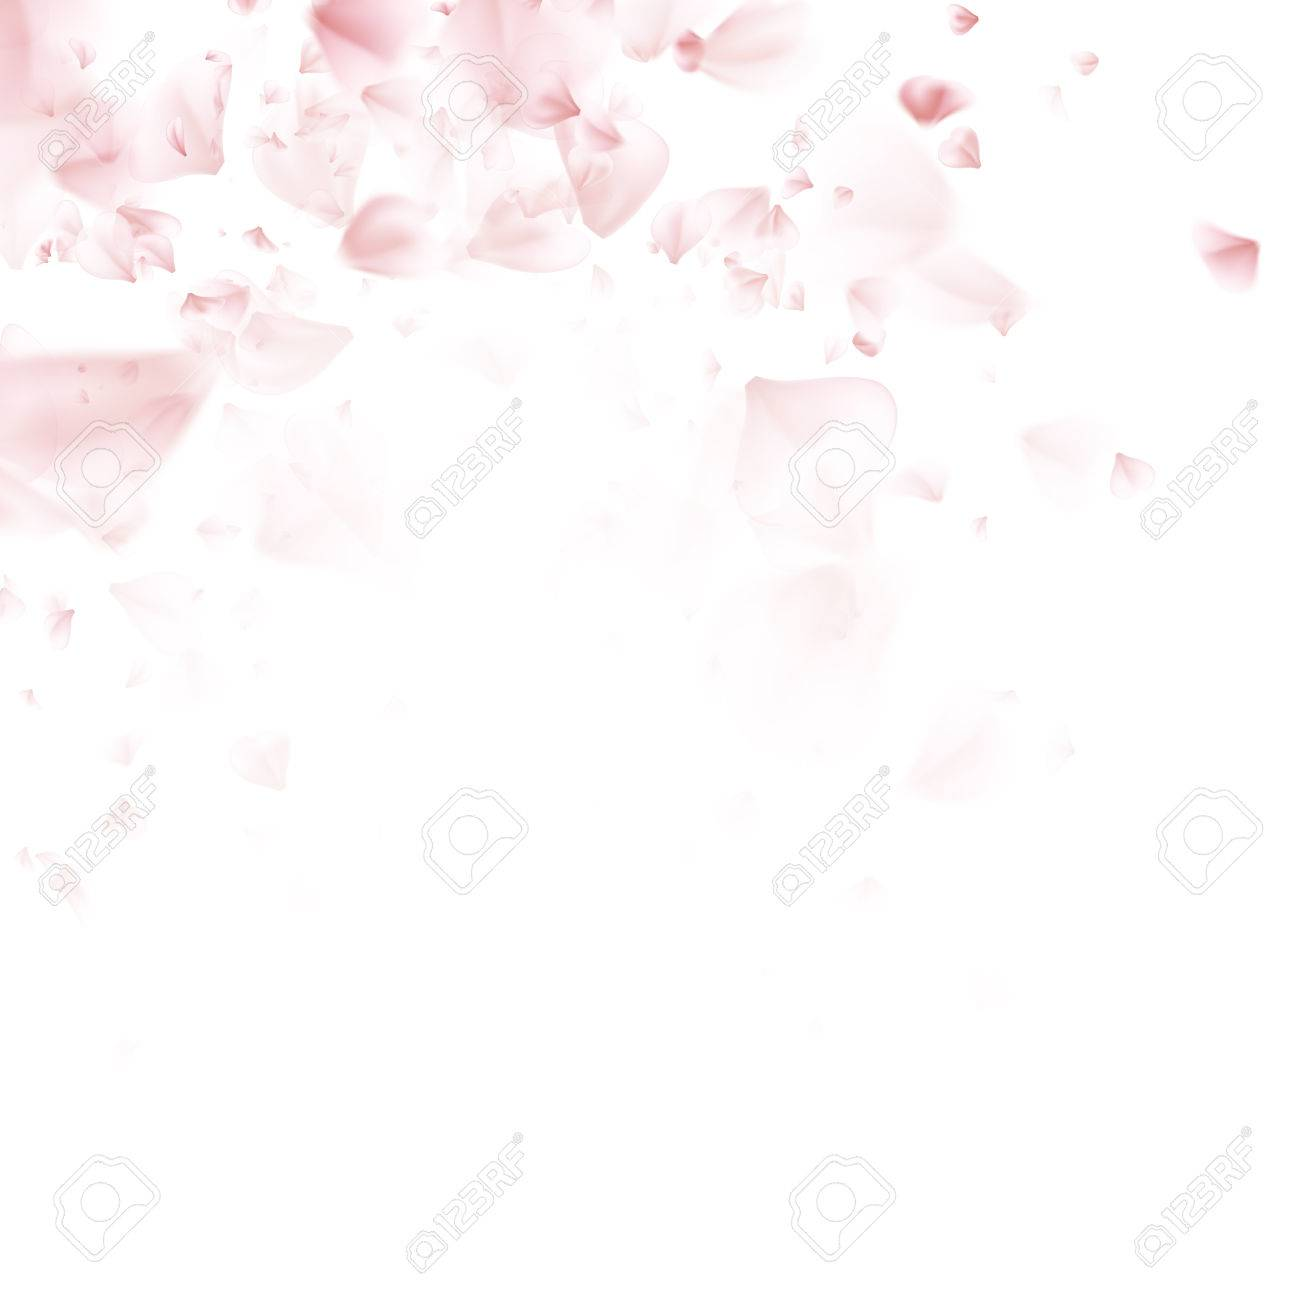 Flying petals. Pattern on white color background. EPS 10 vector file included - 68245437